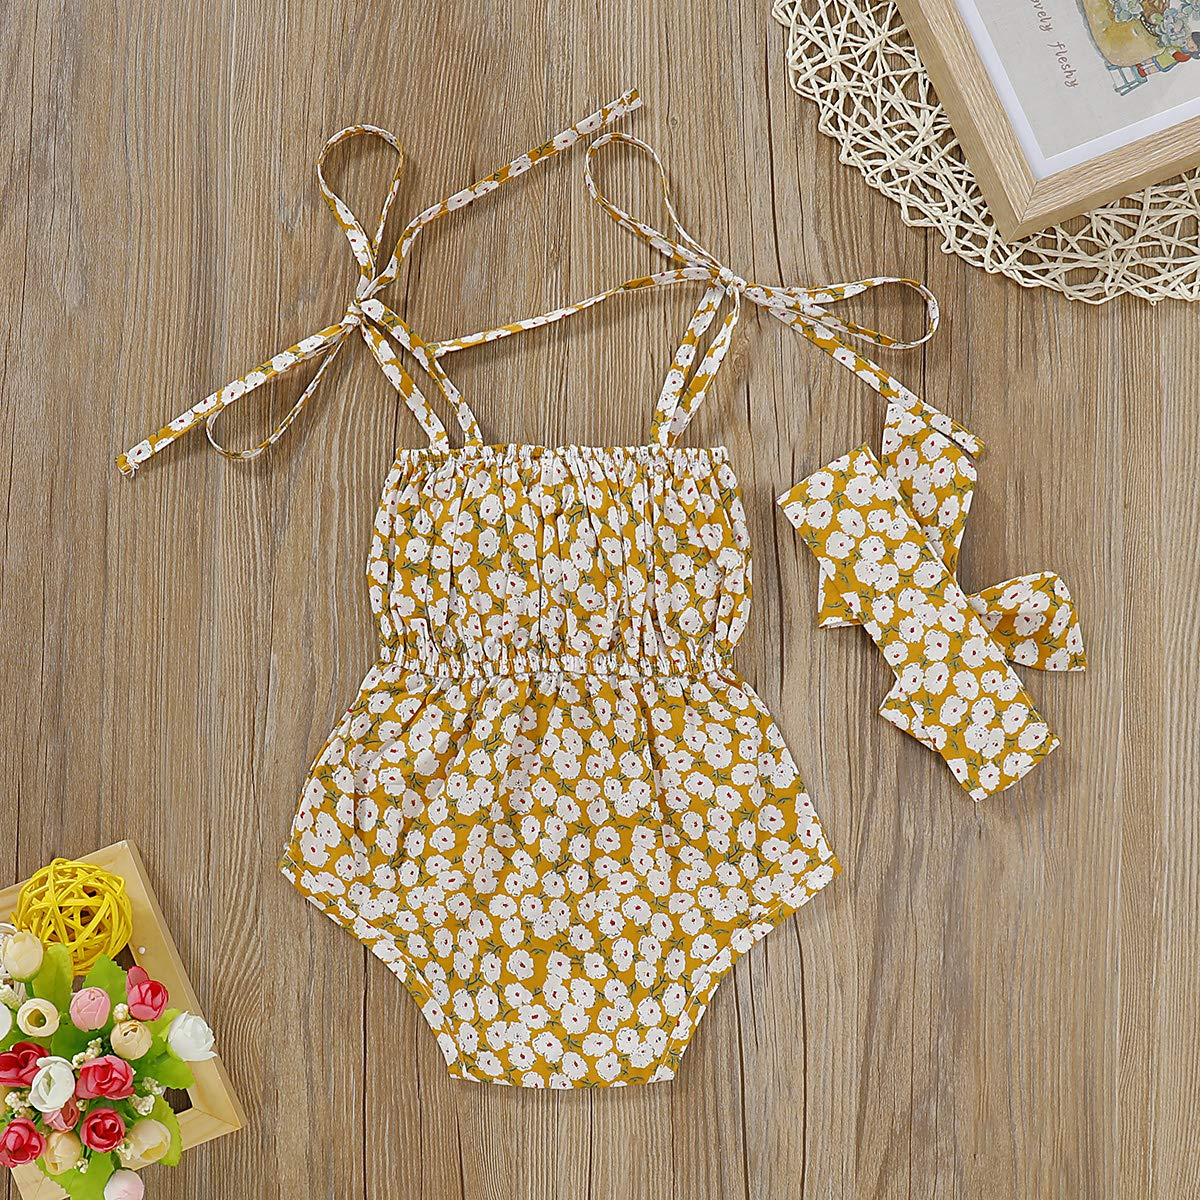 Infant Kids Clothing Baby Girls Cute Bowknot Strap Flower Romper Jumpsuit Bodysuit Top Headband Outfits Clothes Set